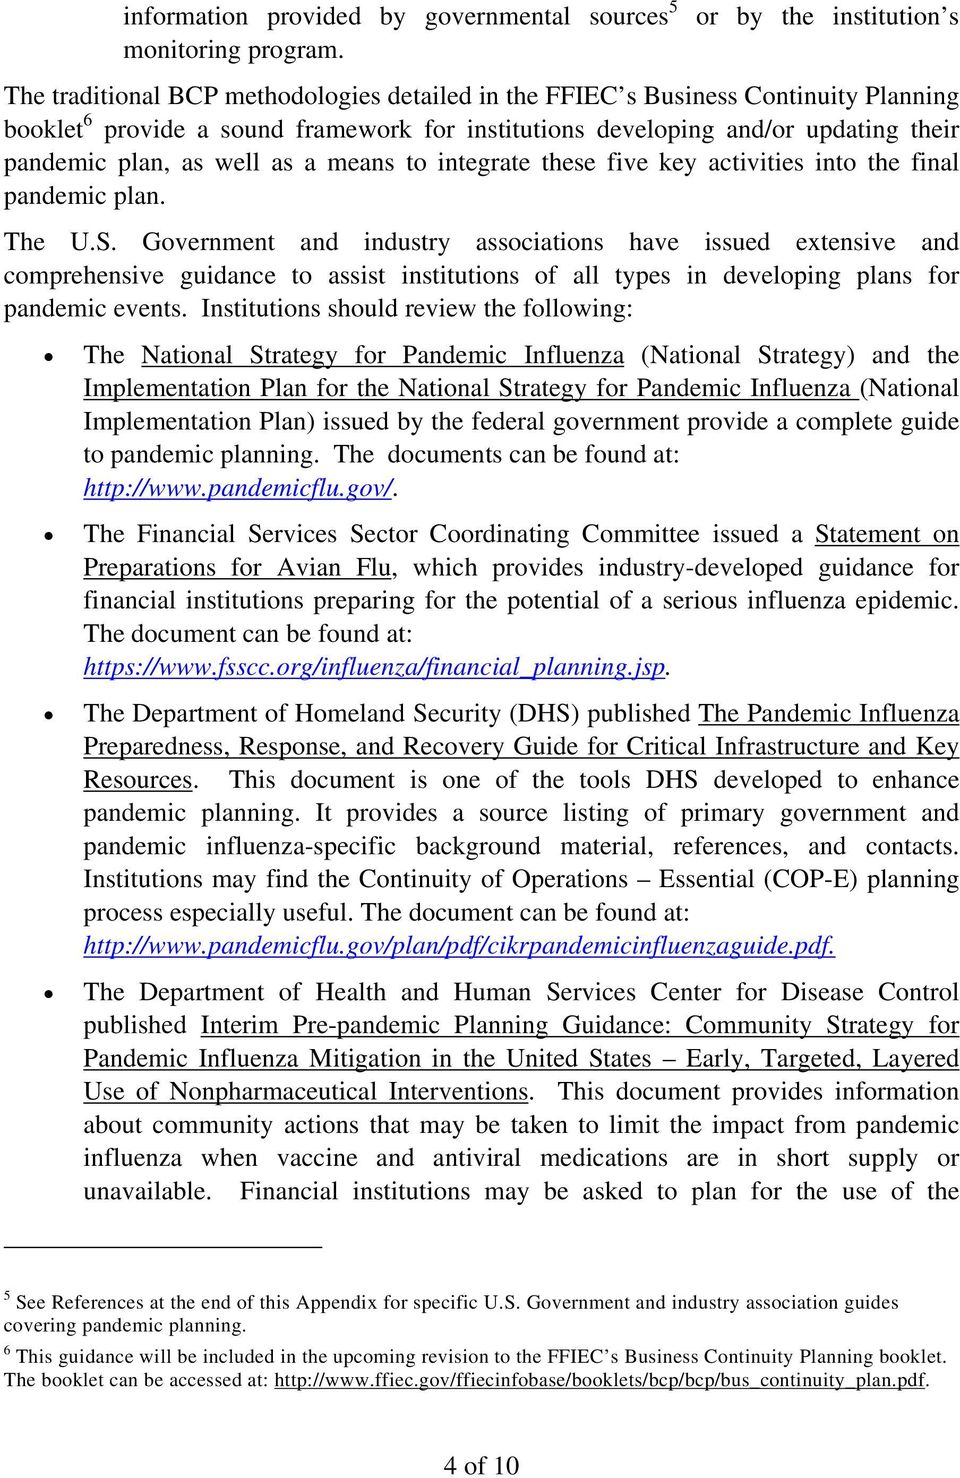 pandemic plan, as well as a means to integrate these five key activities into the final pandemic plan. The U.S.